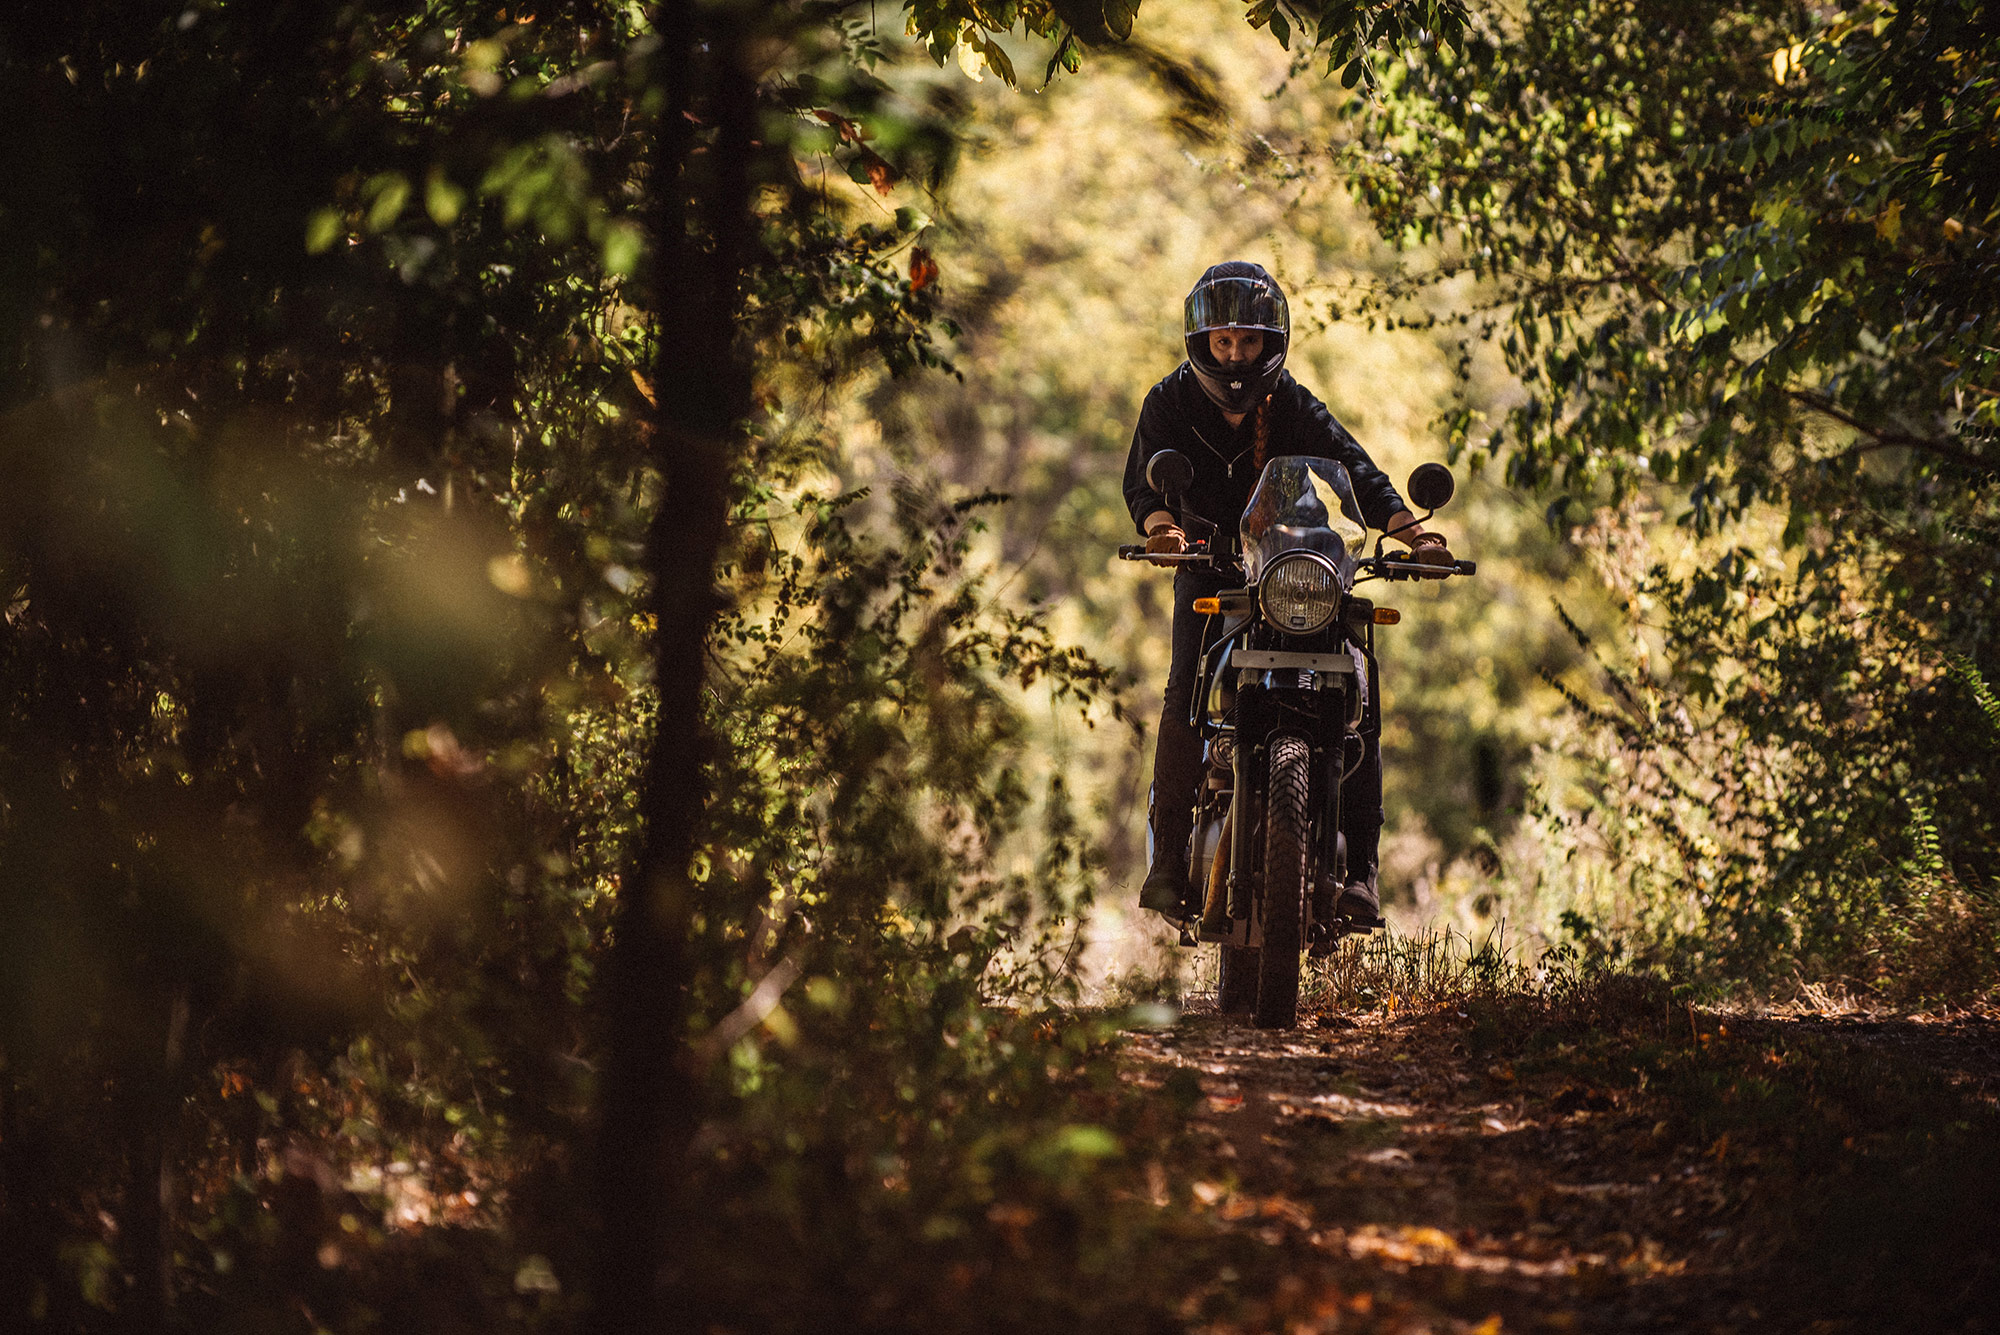 woman on motorycle on dirt path